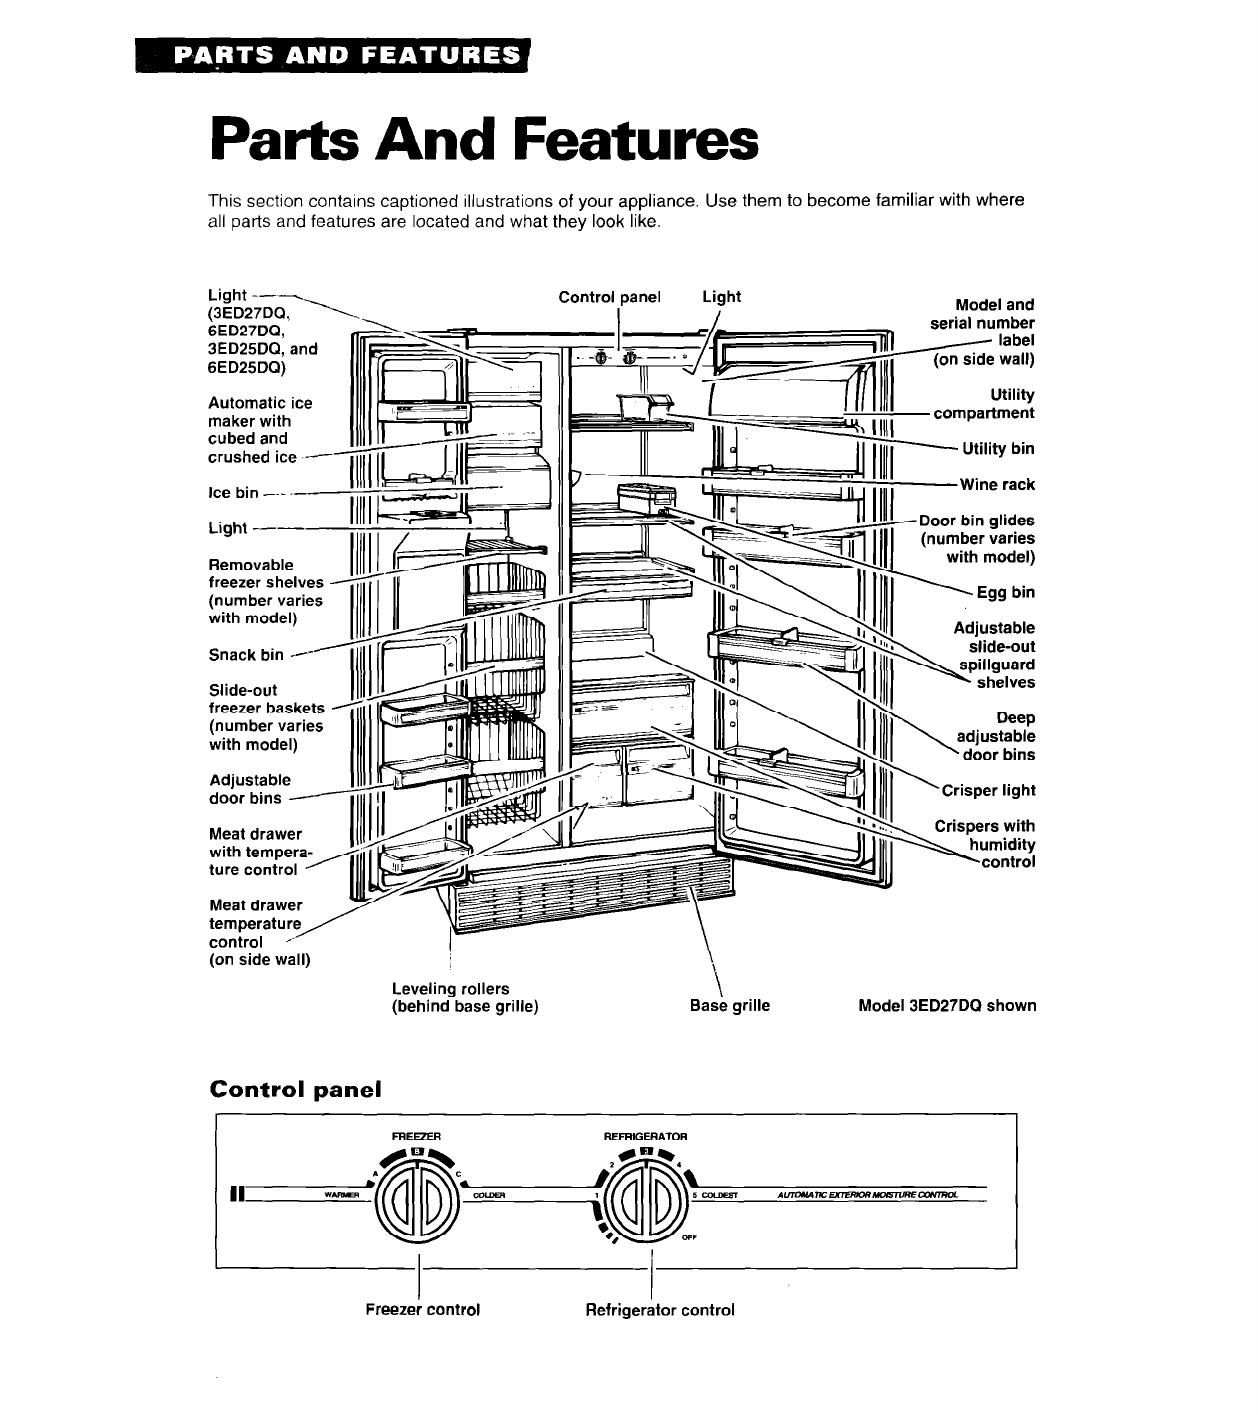 Page 4 of Whirlpool Refrigerator 3ED27DQ User Guide